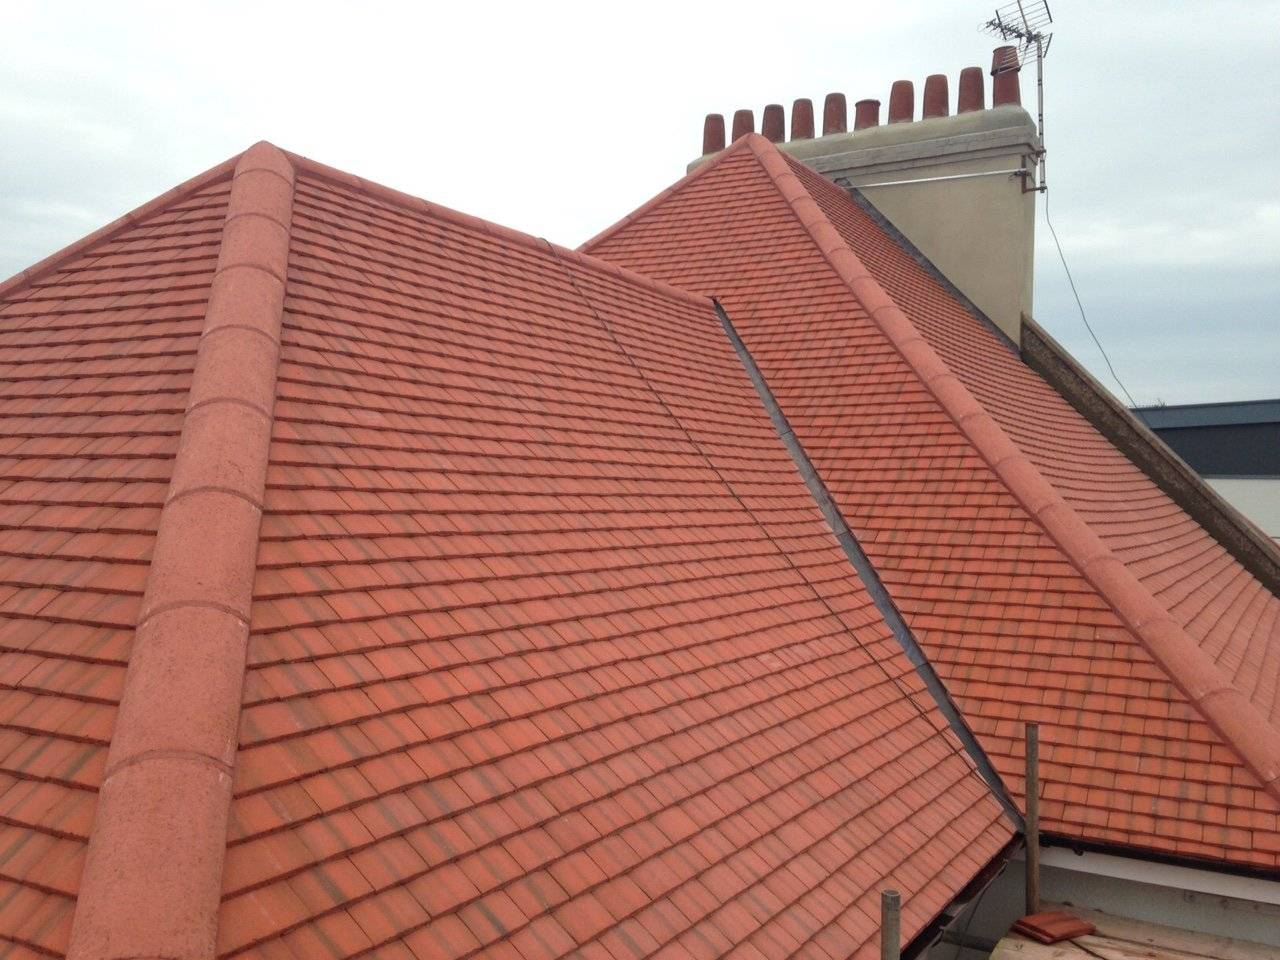 new retiled roof with clay tiles